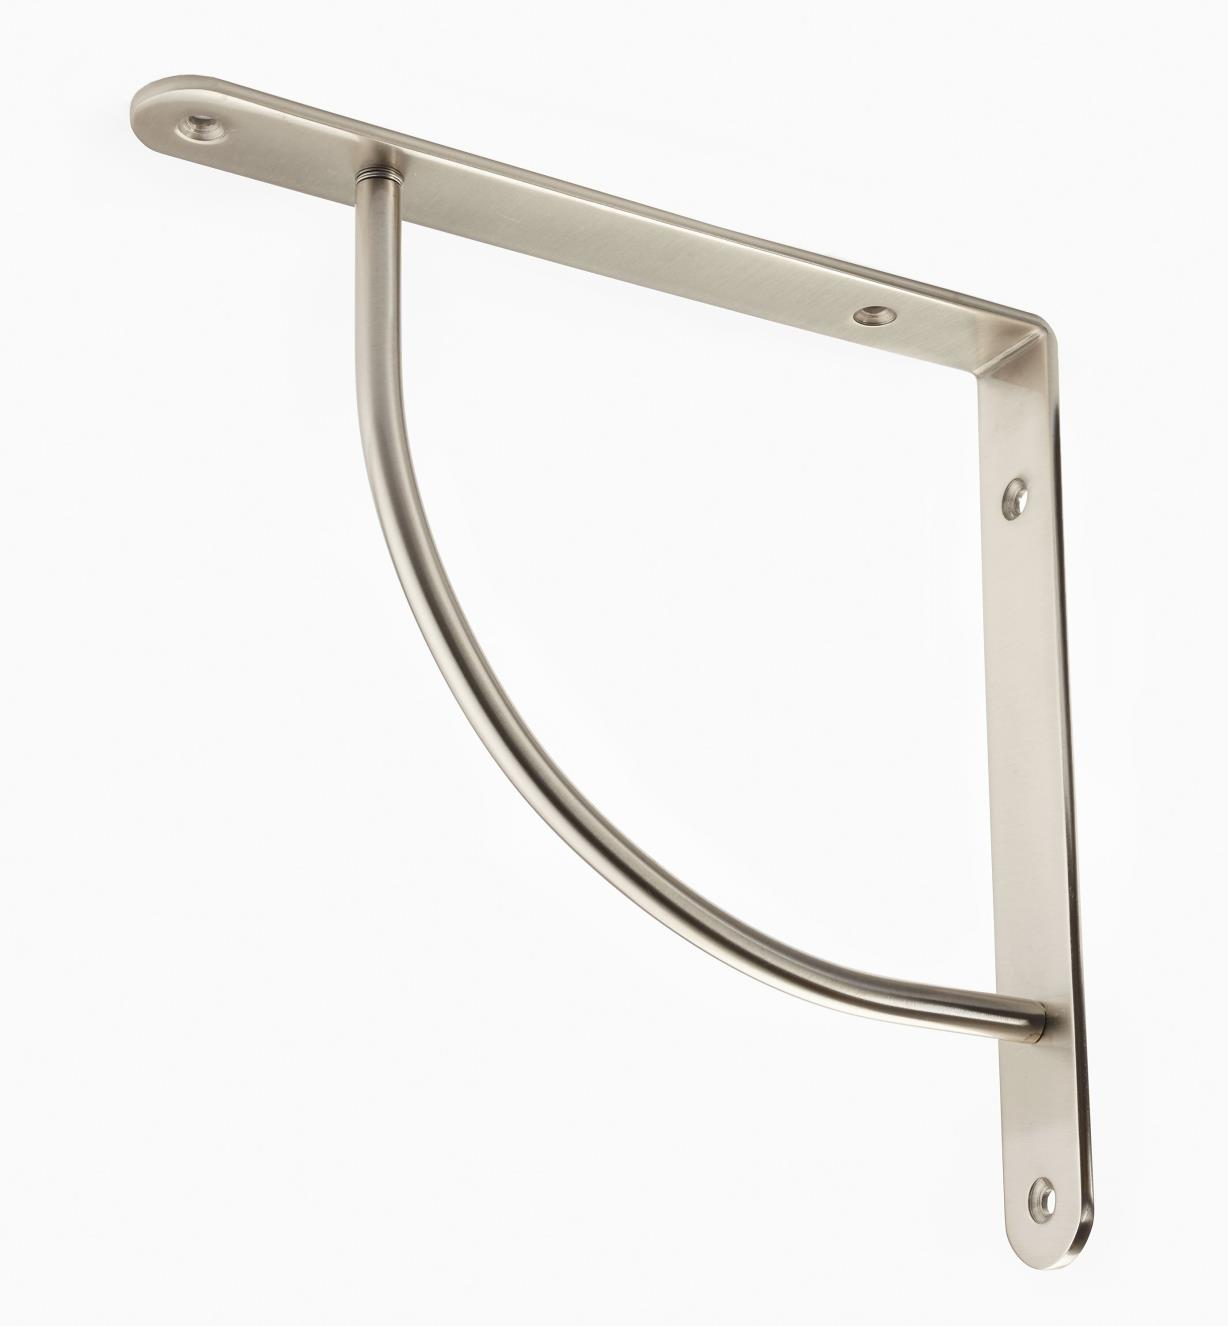 "00S0654 - Brushed Nickel Finish, Convex Steel Shelf Bracket (8 3/4"" x 8 3/4""), ea."